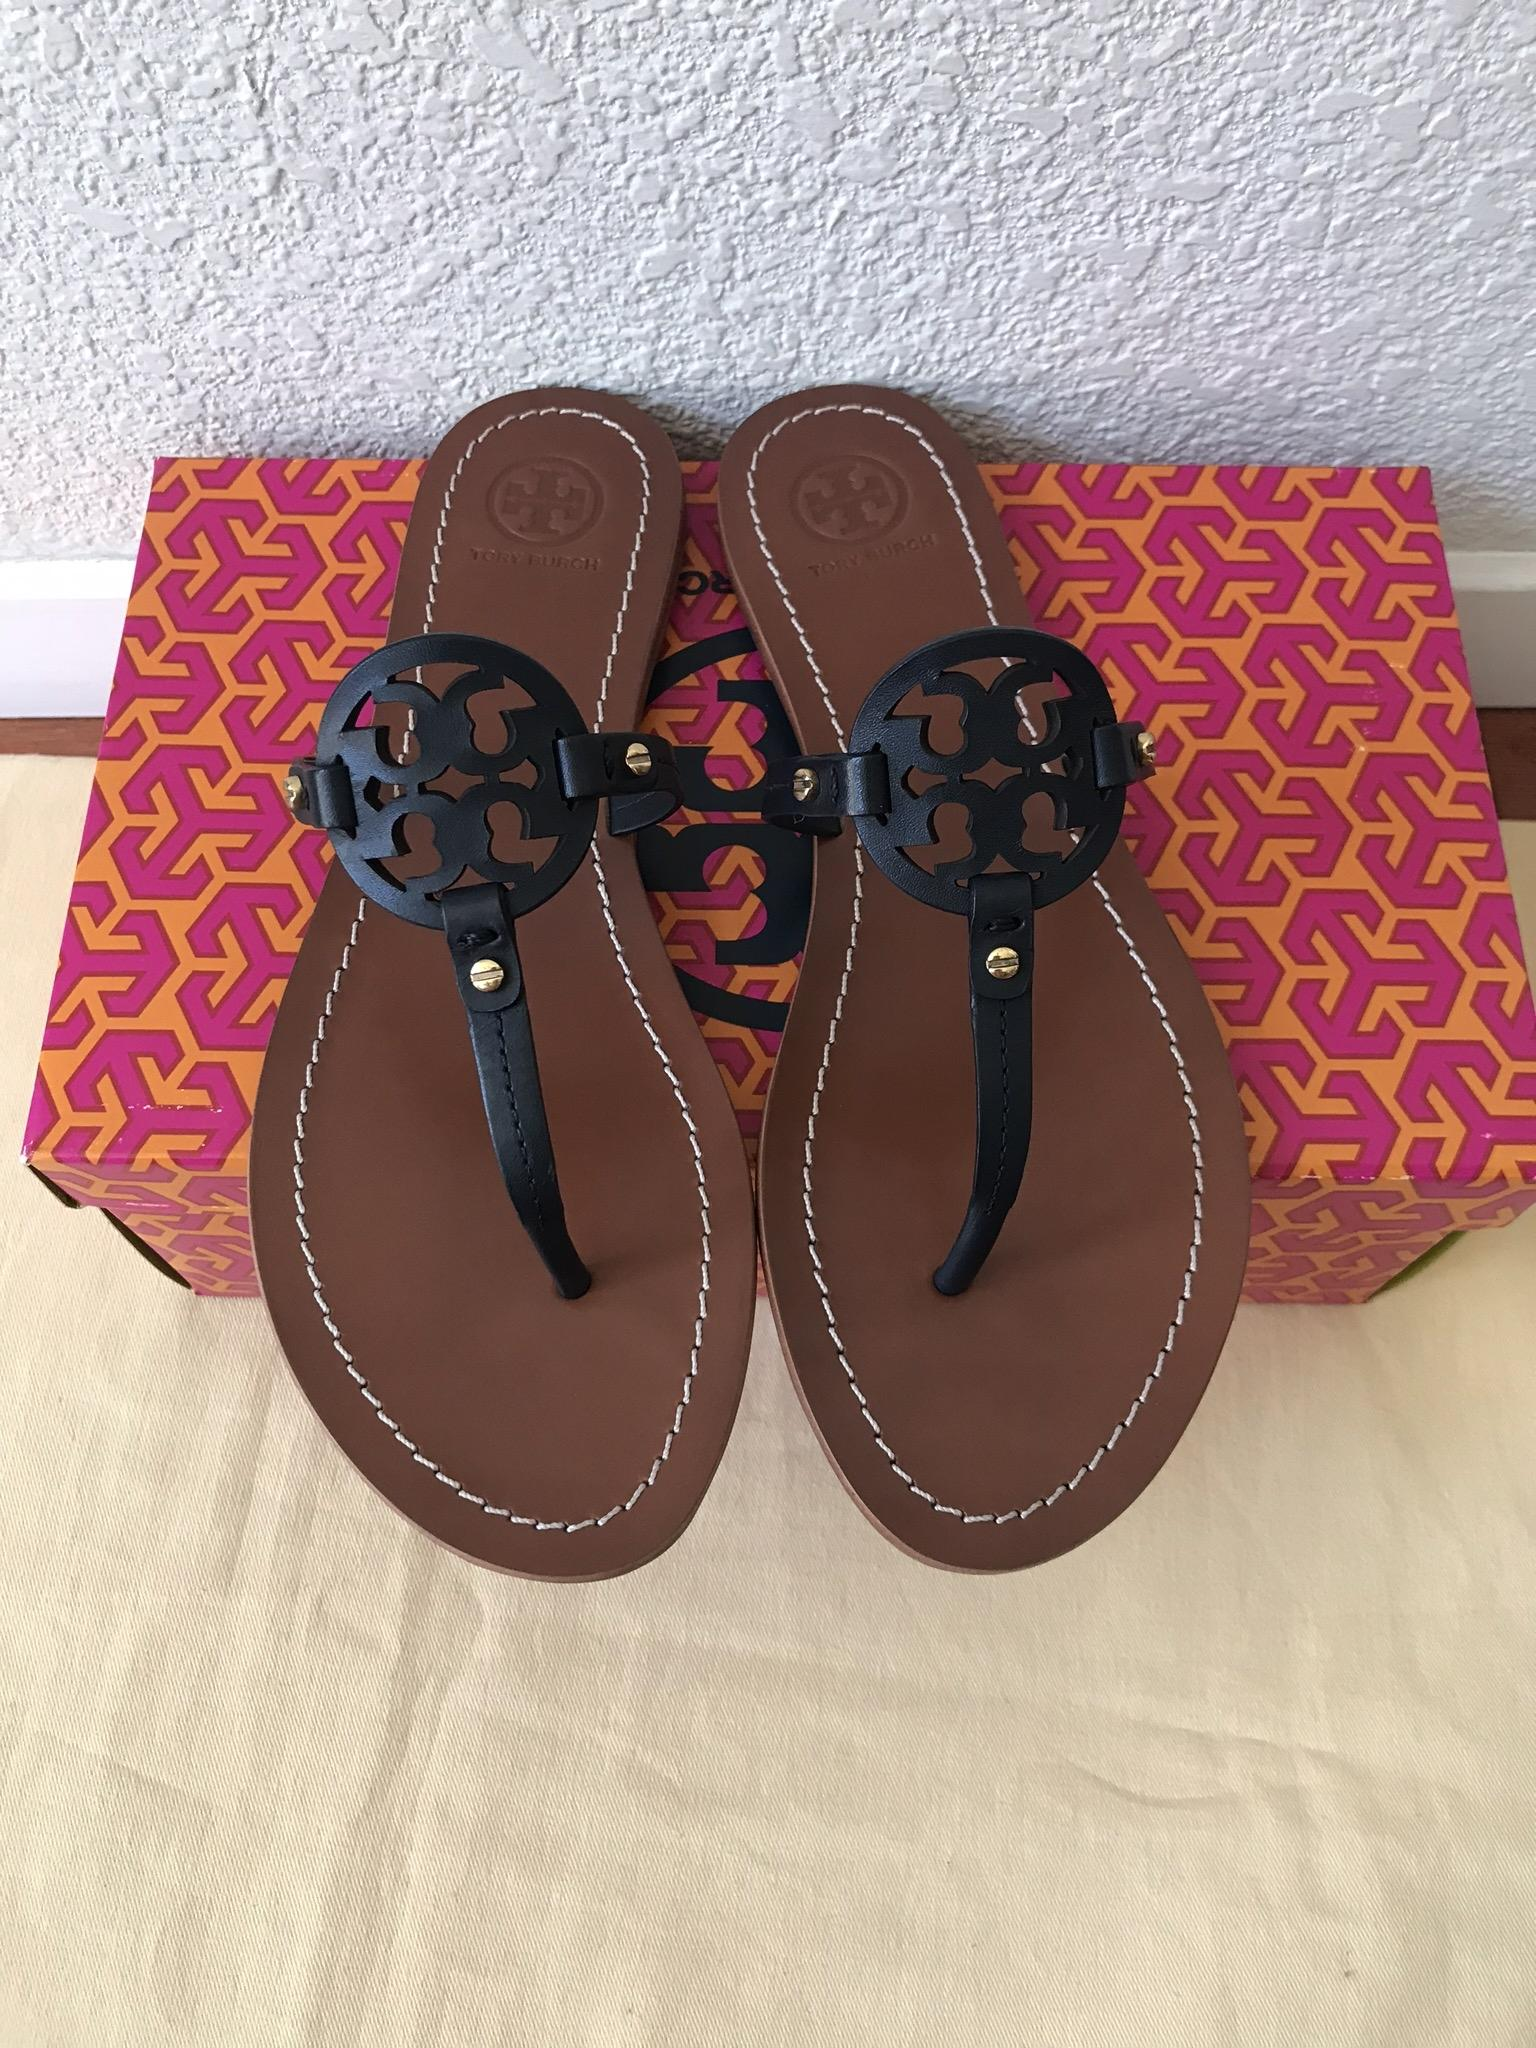 1018f9325476f ... Tory Tory Tory Burch Blue 8.5m Mini Miller Flat Sandals Size US 8.5  Regular ...